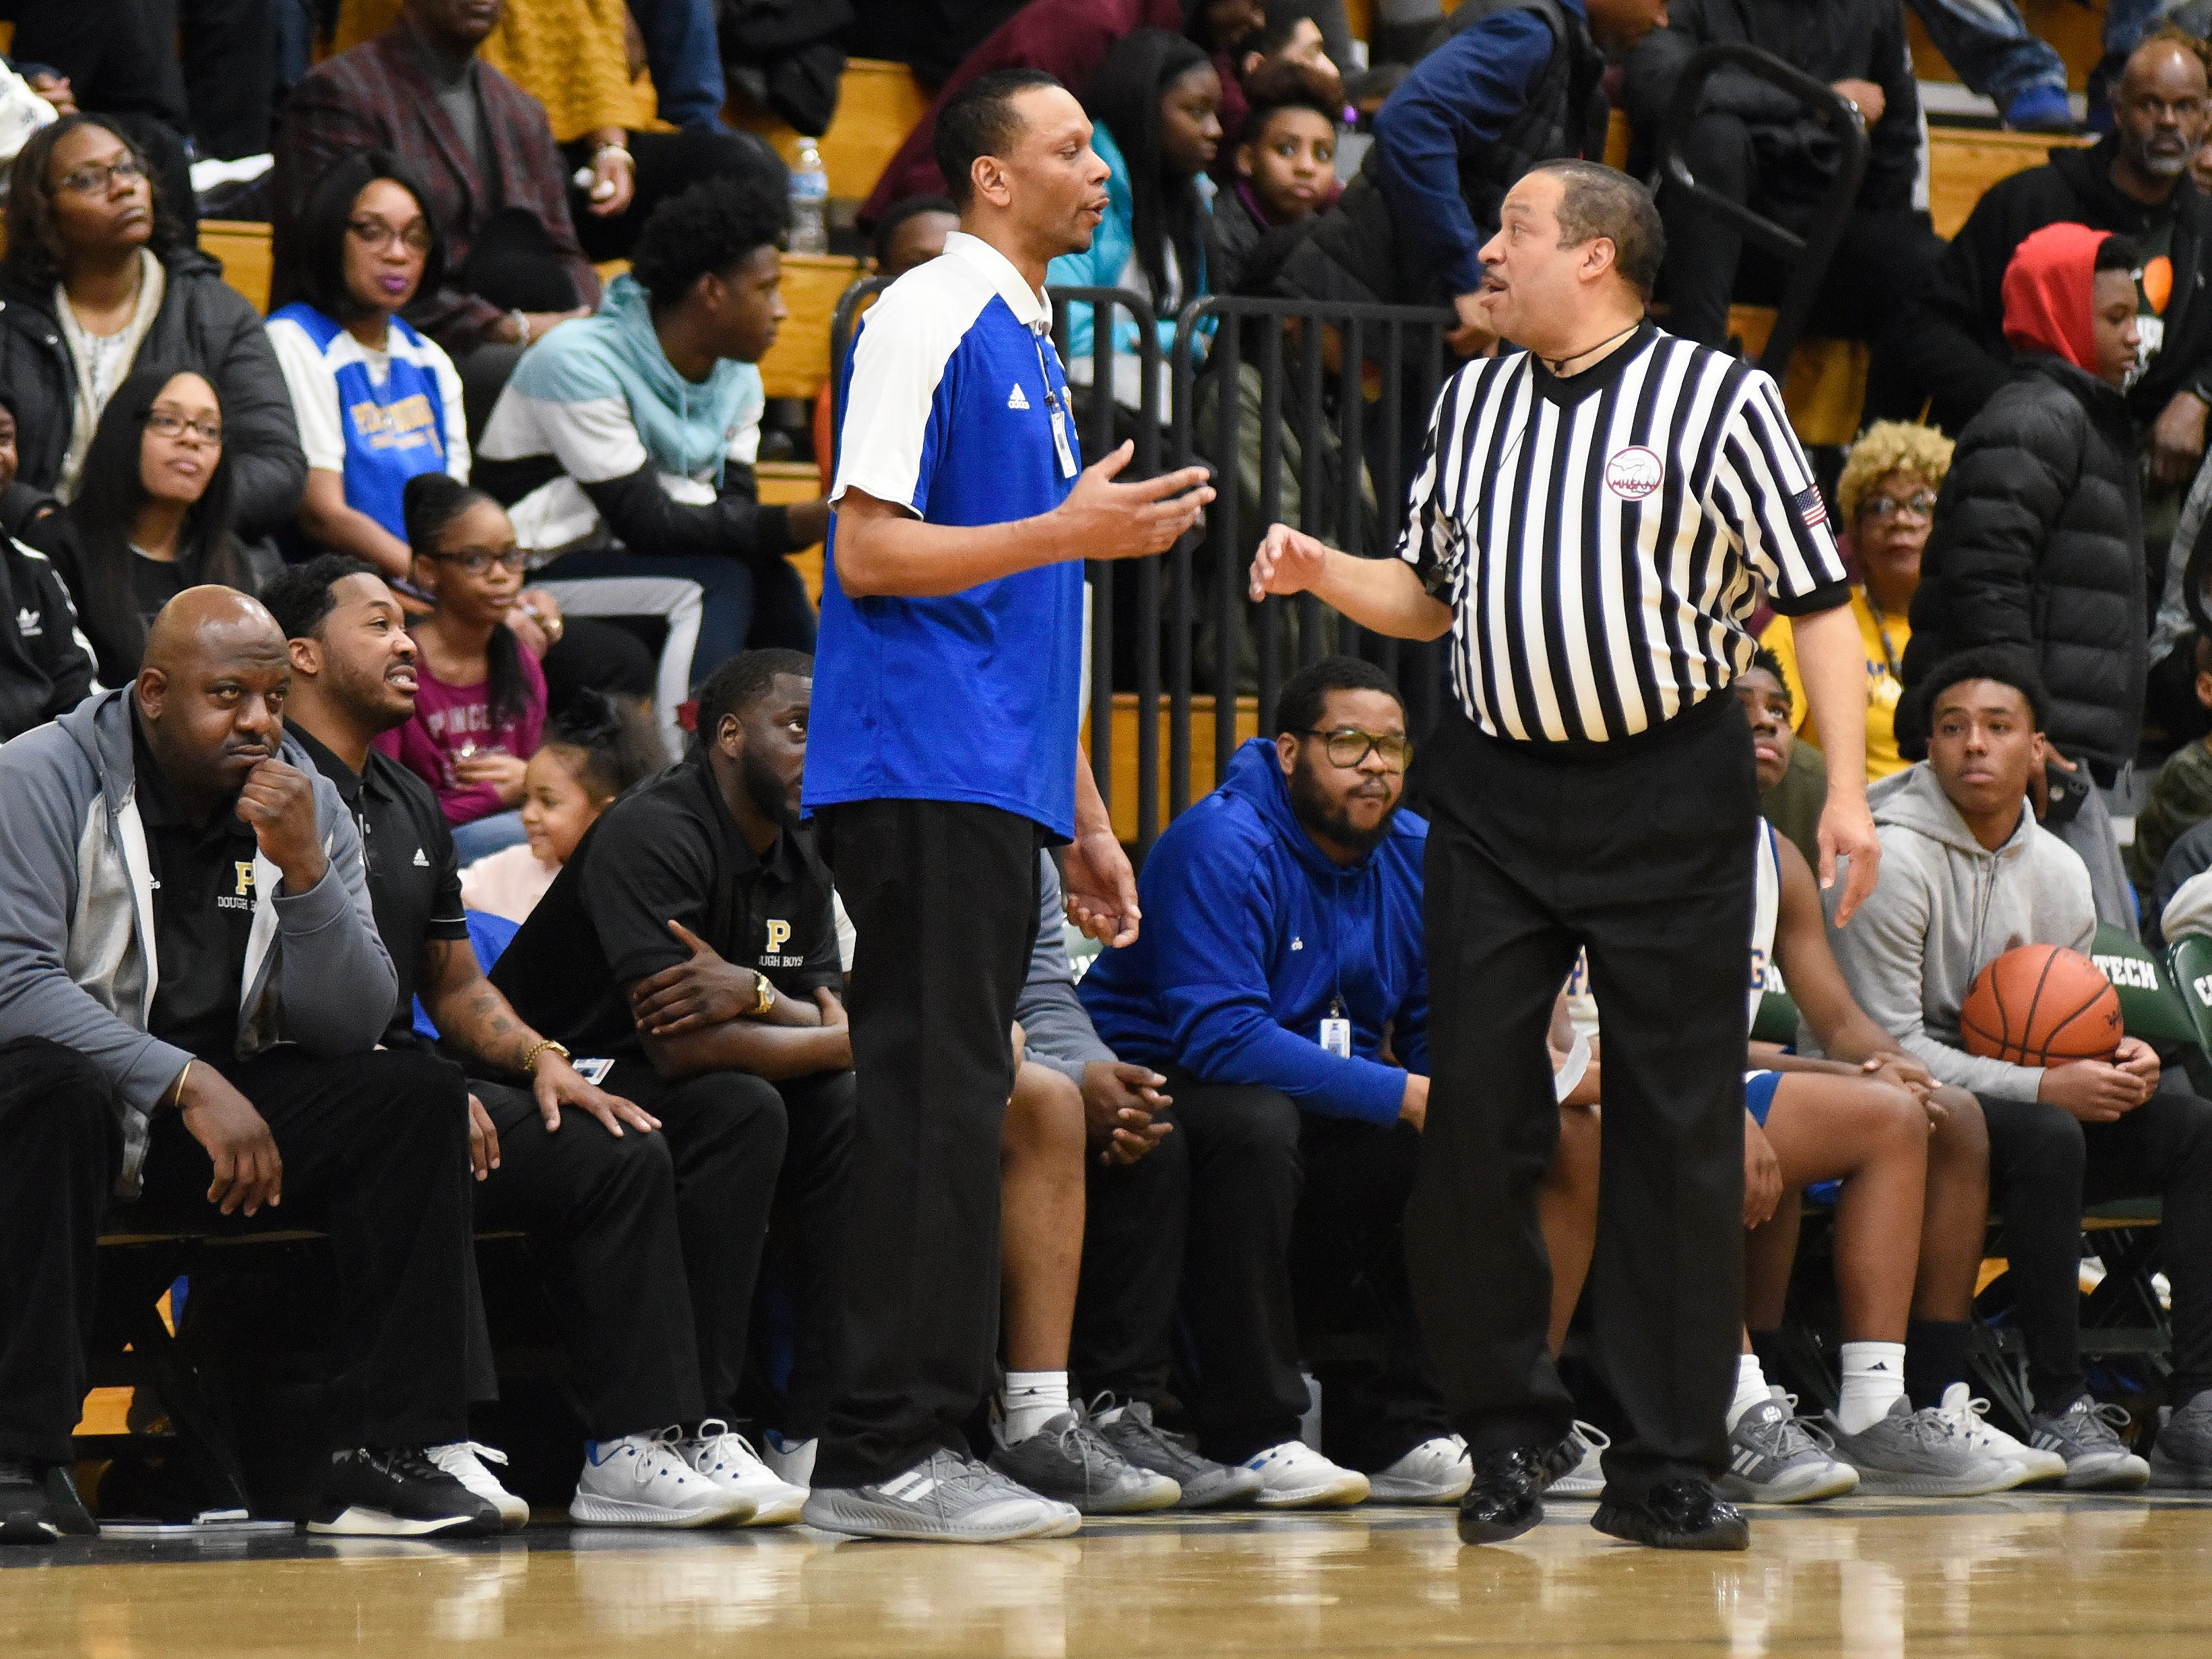 Detroit Pershing boys basketball head coach Shawn Hill, left, argues a call with a referee as his team played against Cass Tech during the fourth quarter.